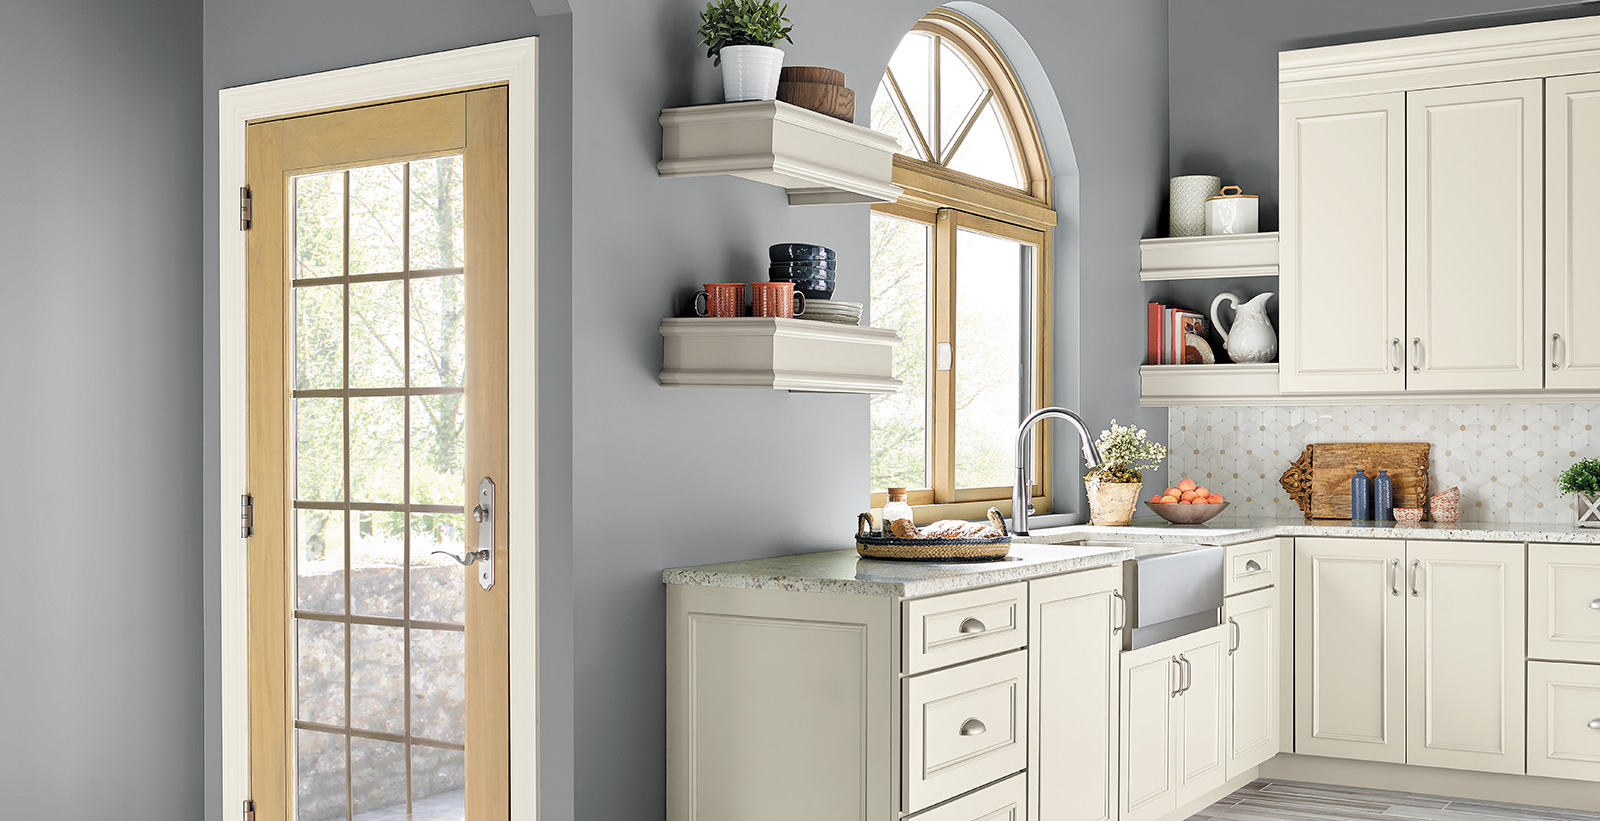 Traditional styled kitchen with blue gray on walls, white on cabinets, and granite counter tops